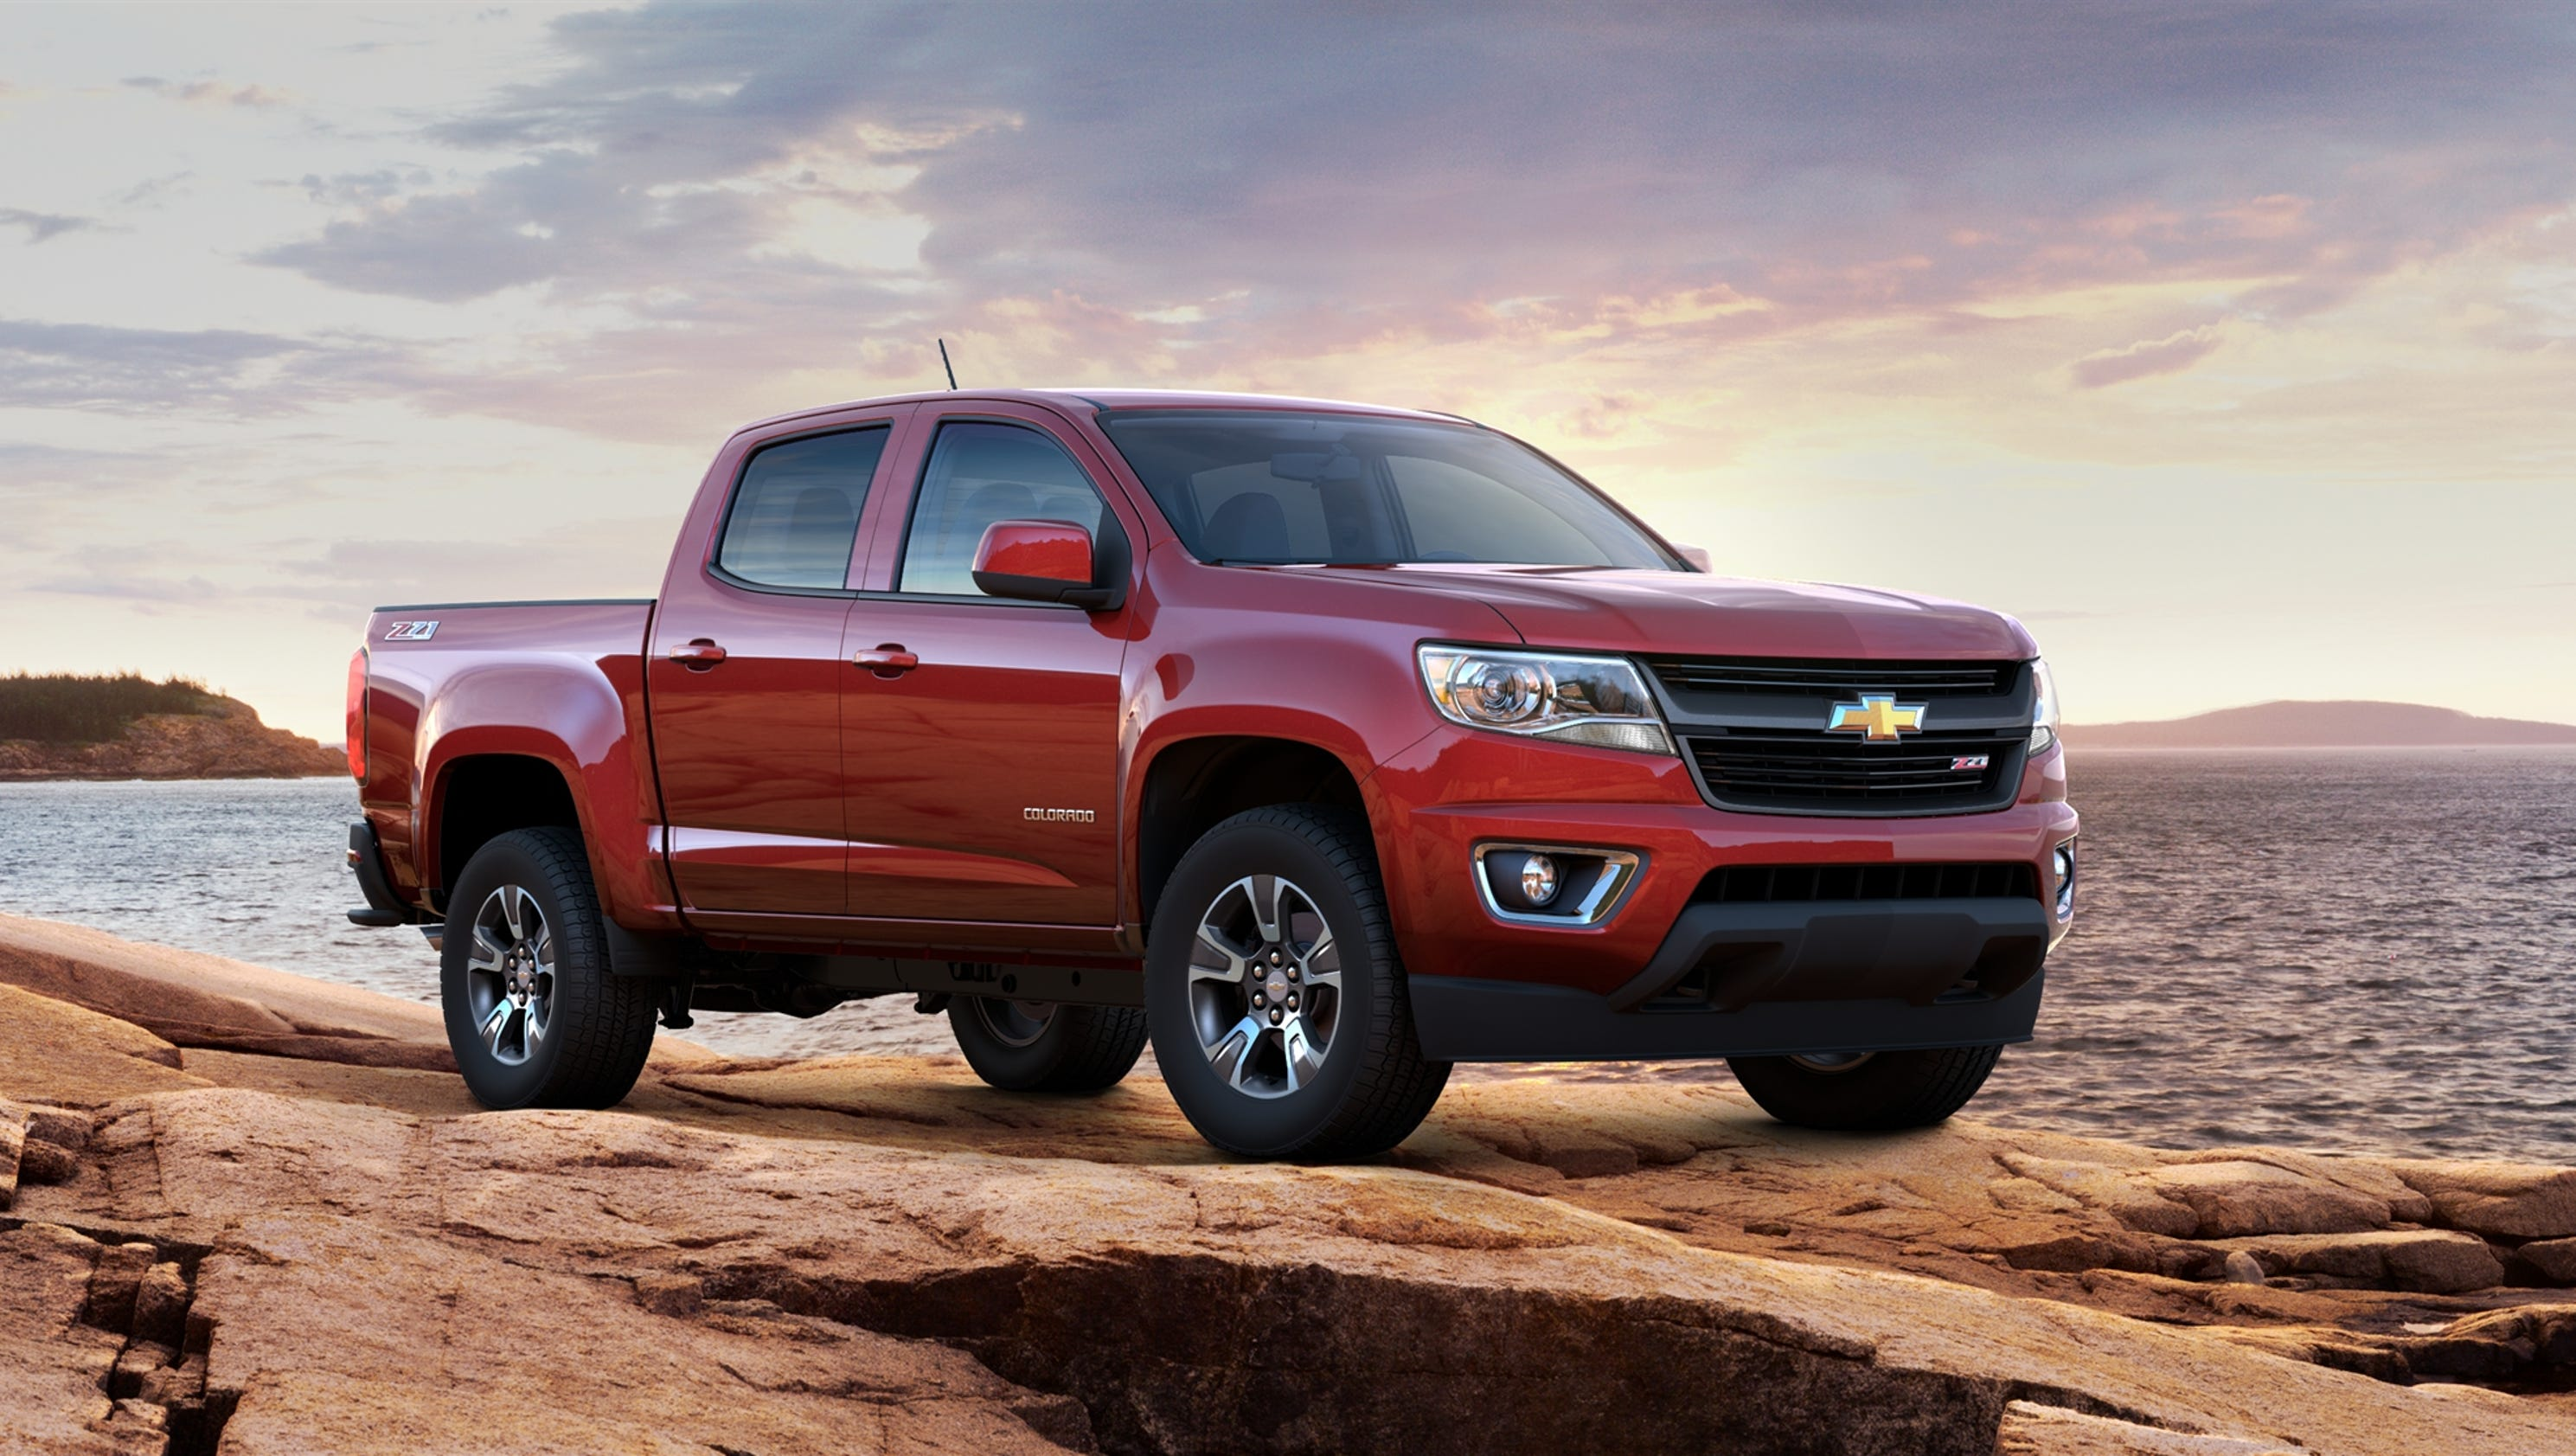 v diesel news first chevrolet chevy h duramax drive or colorado